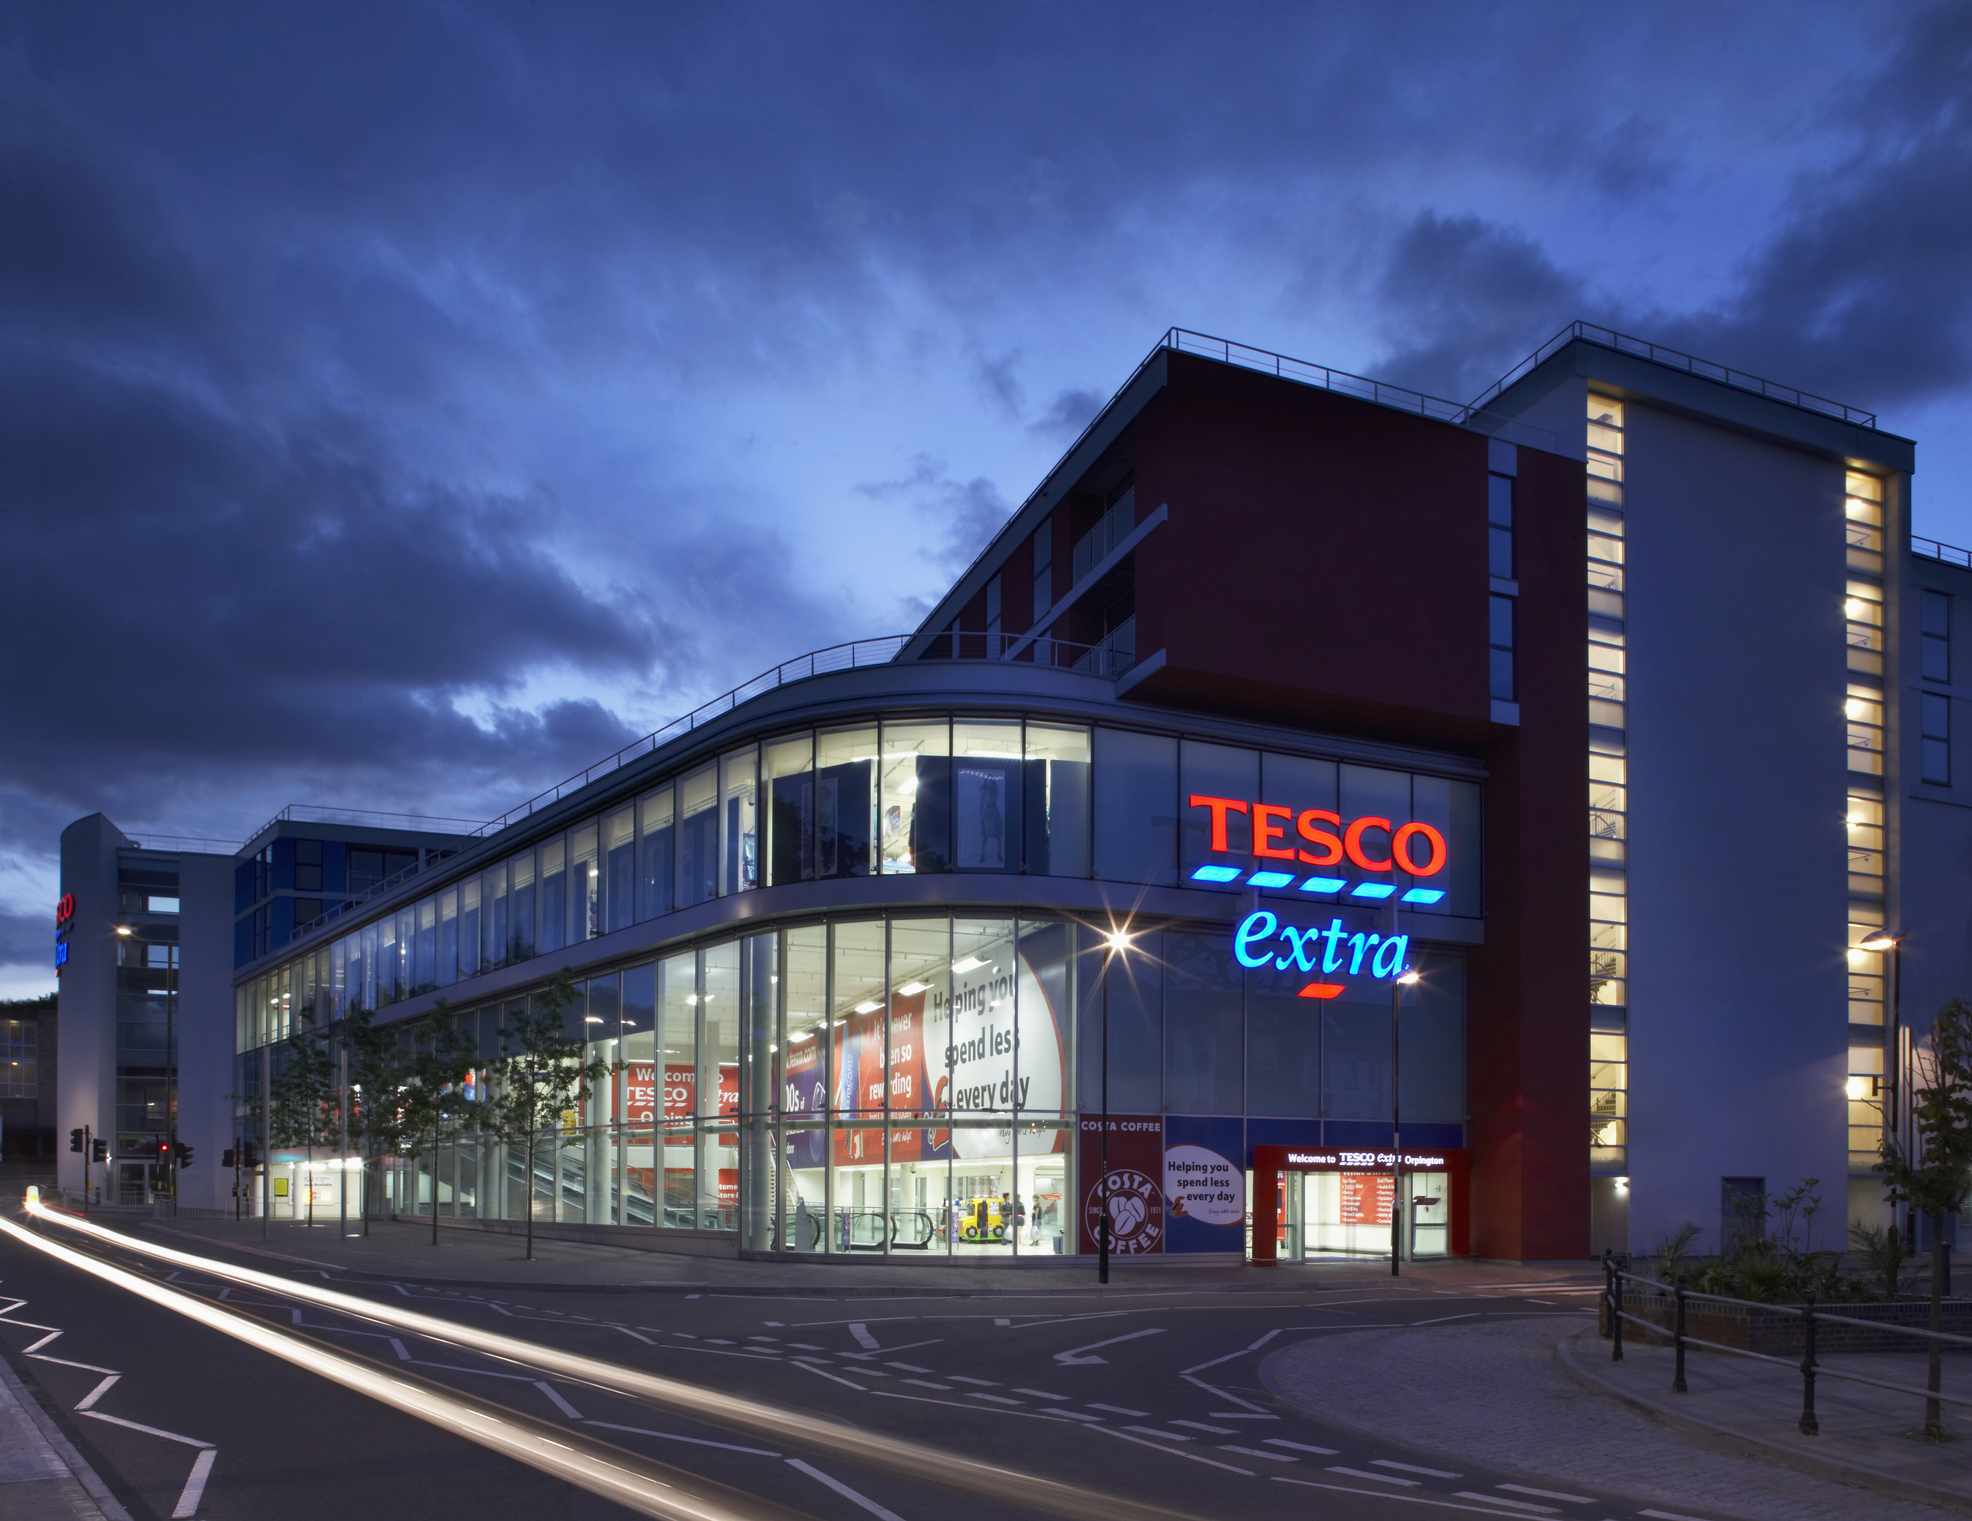 Tesco, Morrisons and Asda New Year opening times for 31 December and 1 January